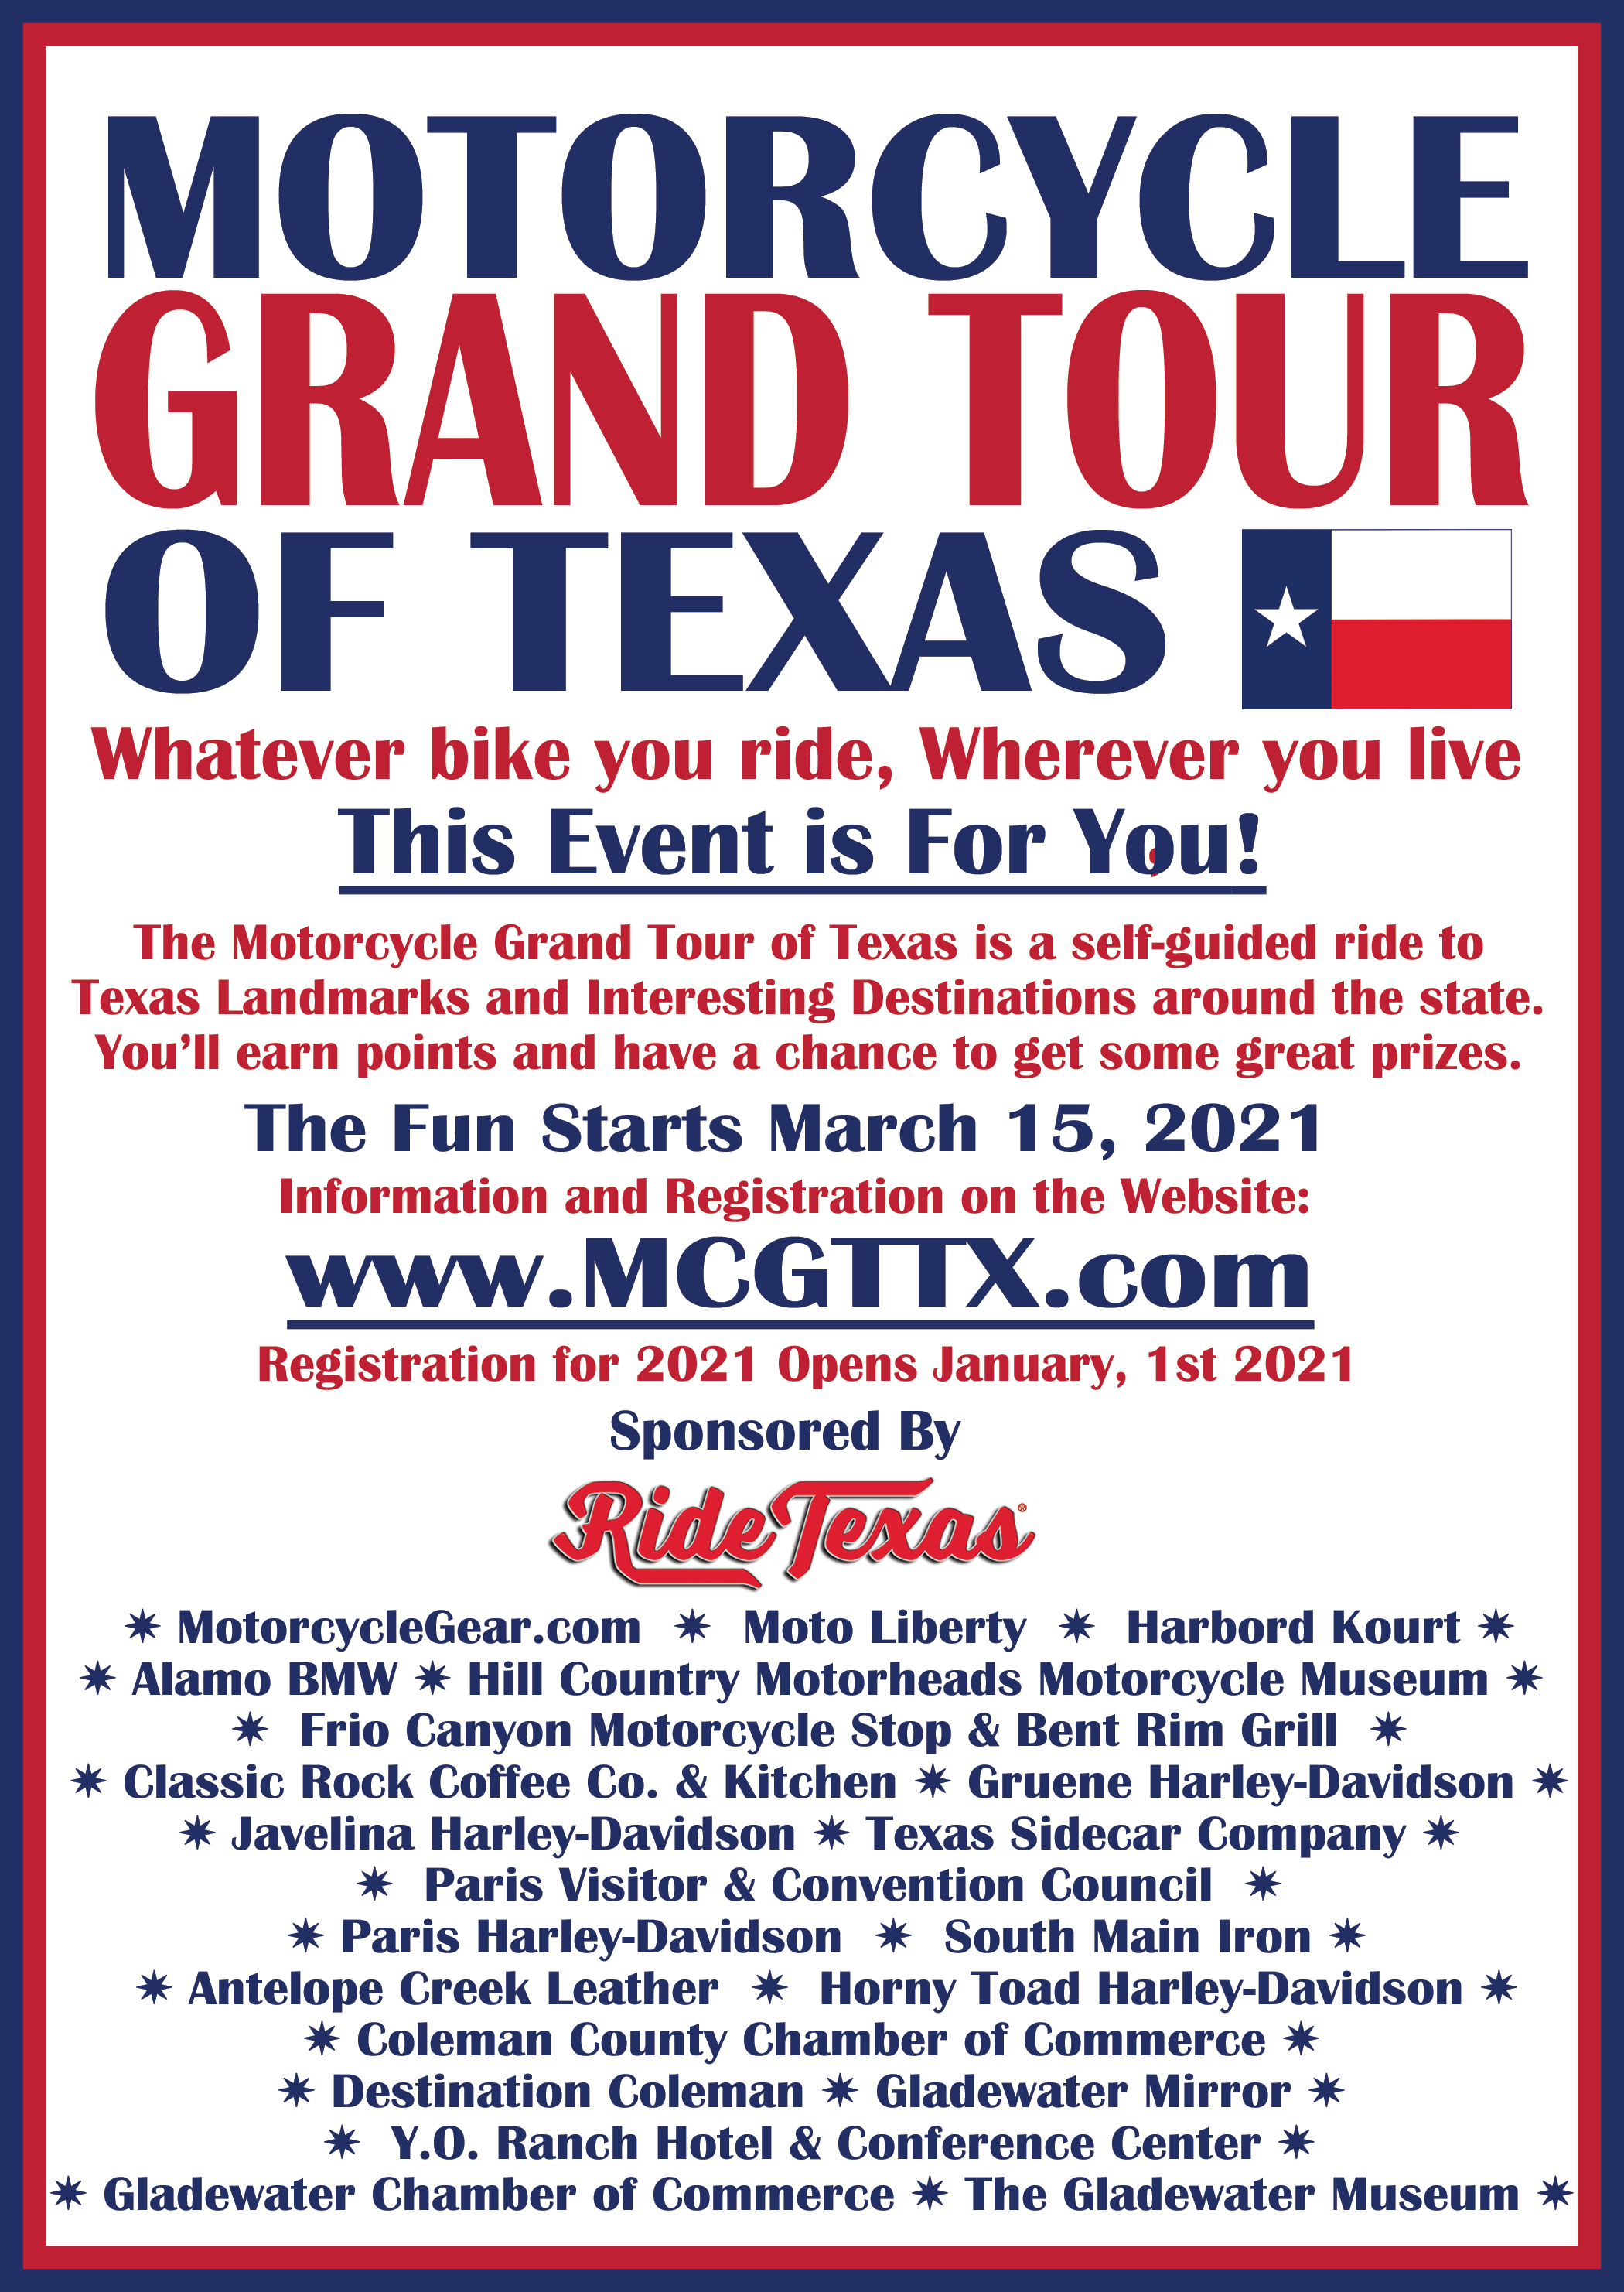 Motorcycle Tour Flyer Image